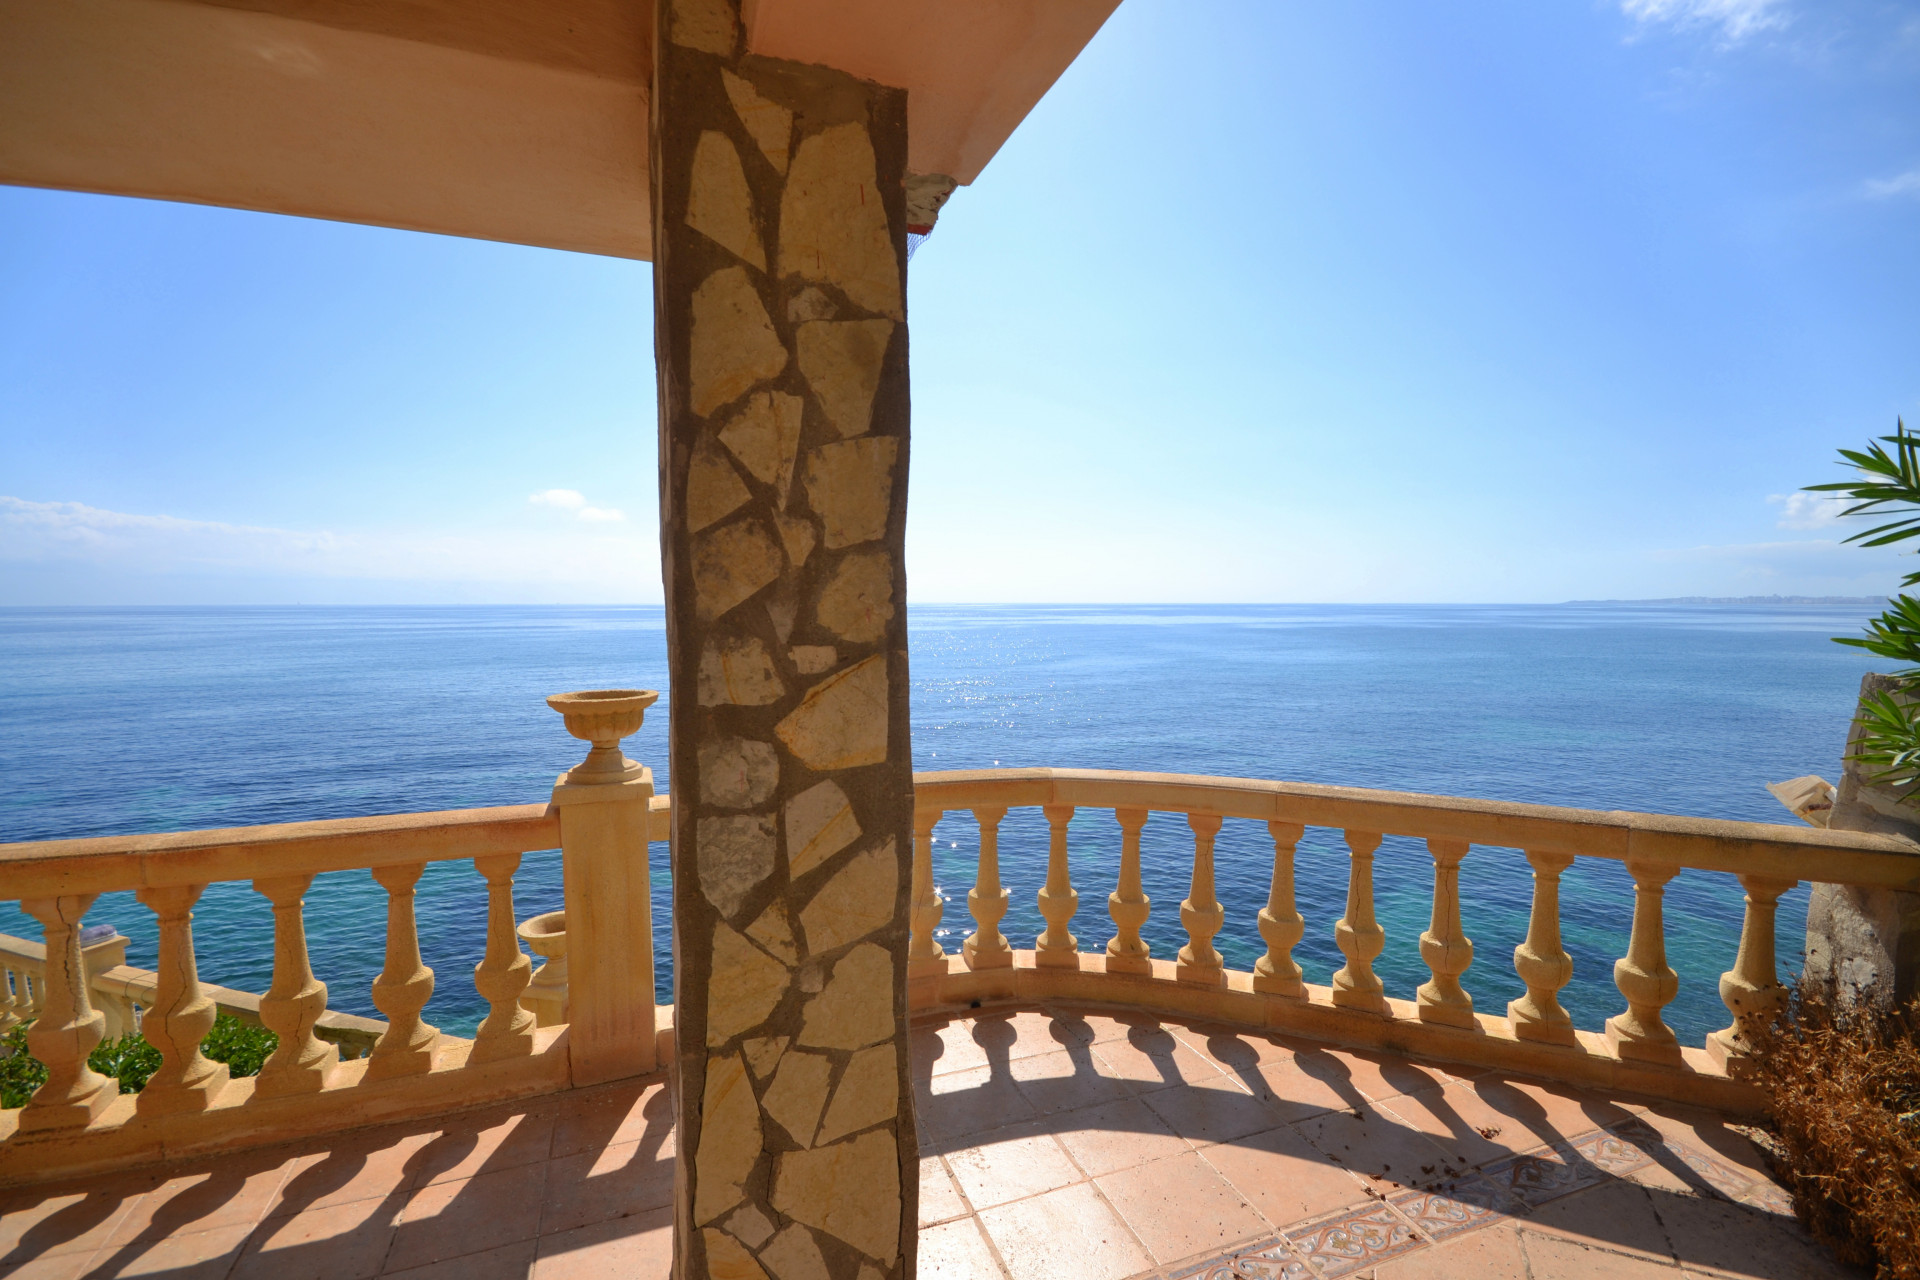 Imposing front-line villa with pool, sea access and breathtaking views over the Mediterreanean